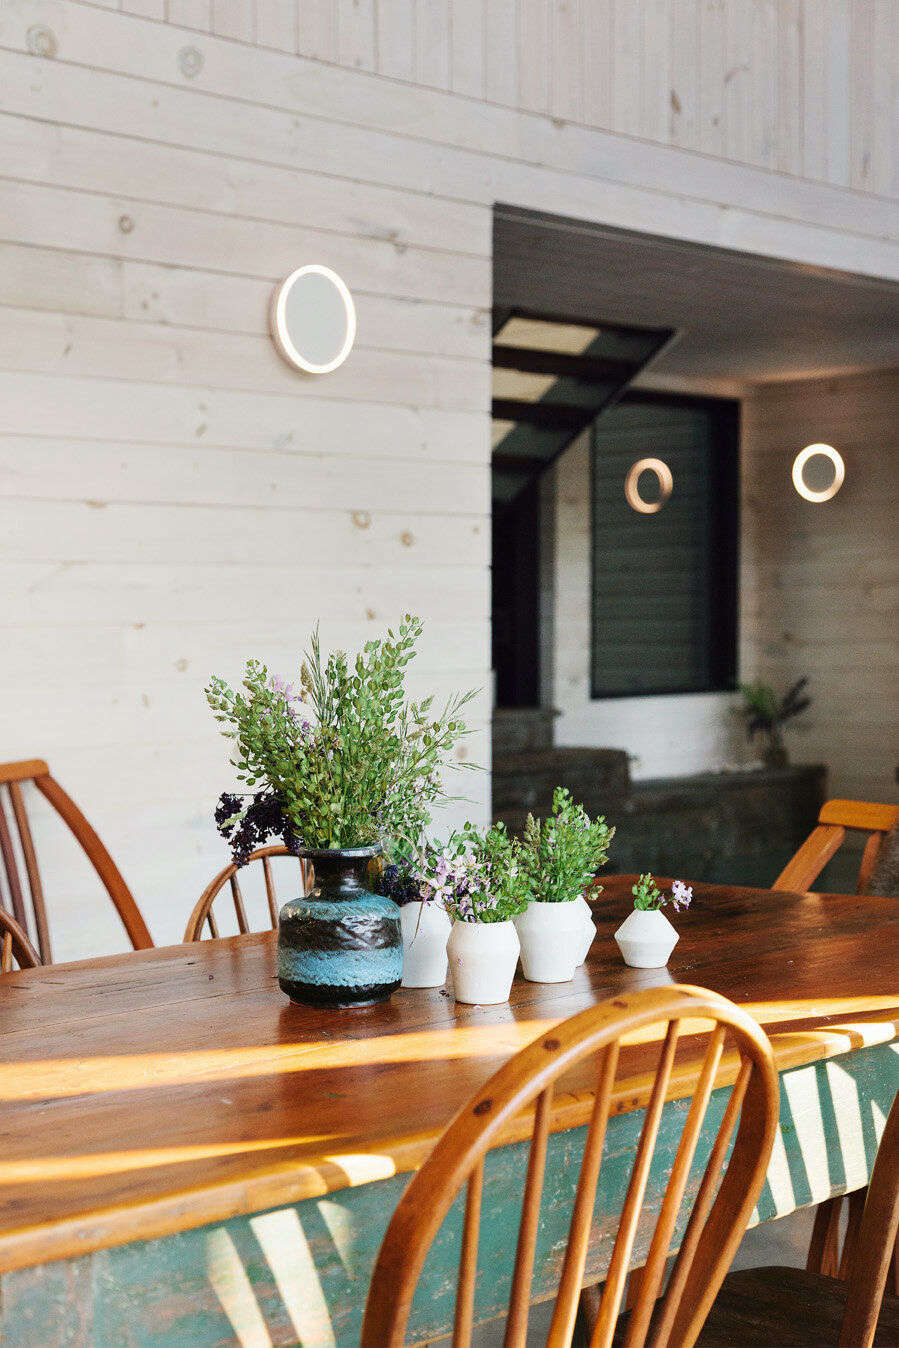 A collection of ceramic vases from Cylinder Studio on the farmhouse table. The sconces are by Anony.